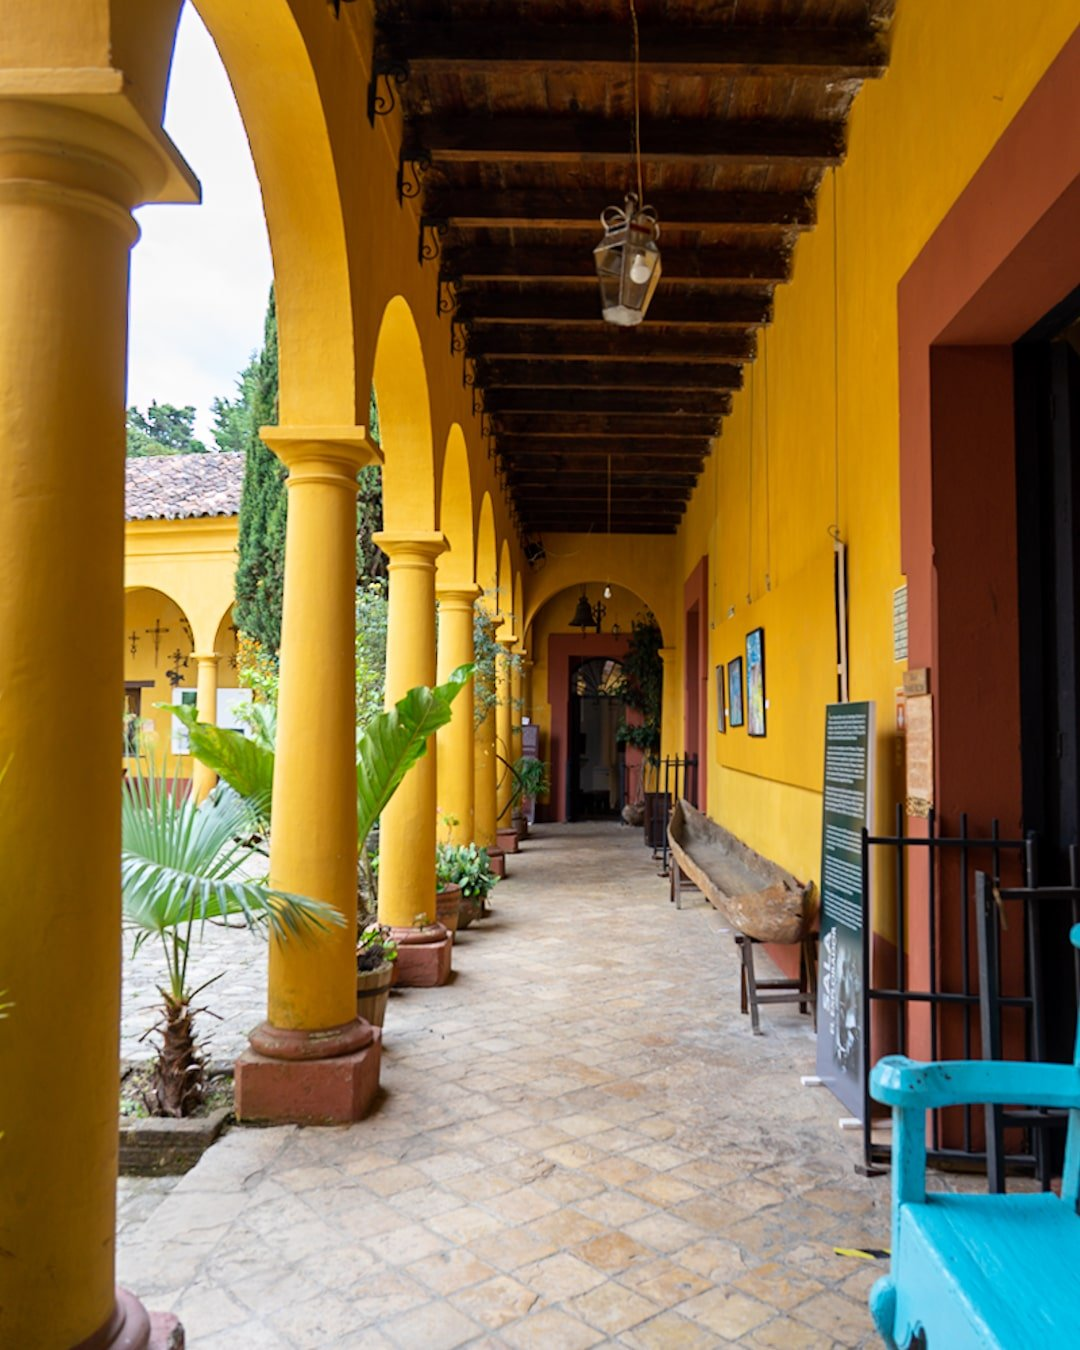 yellow pillars lining the na bolom museum outdoor hallway